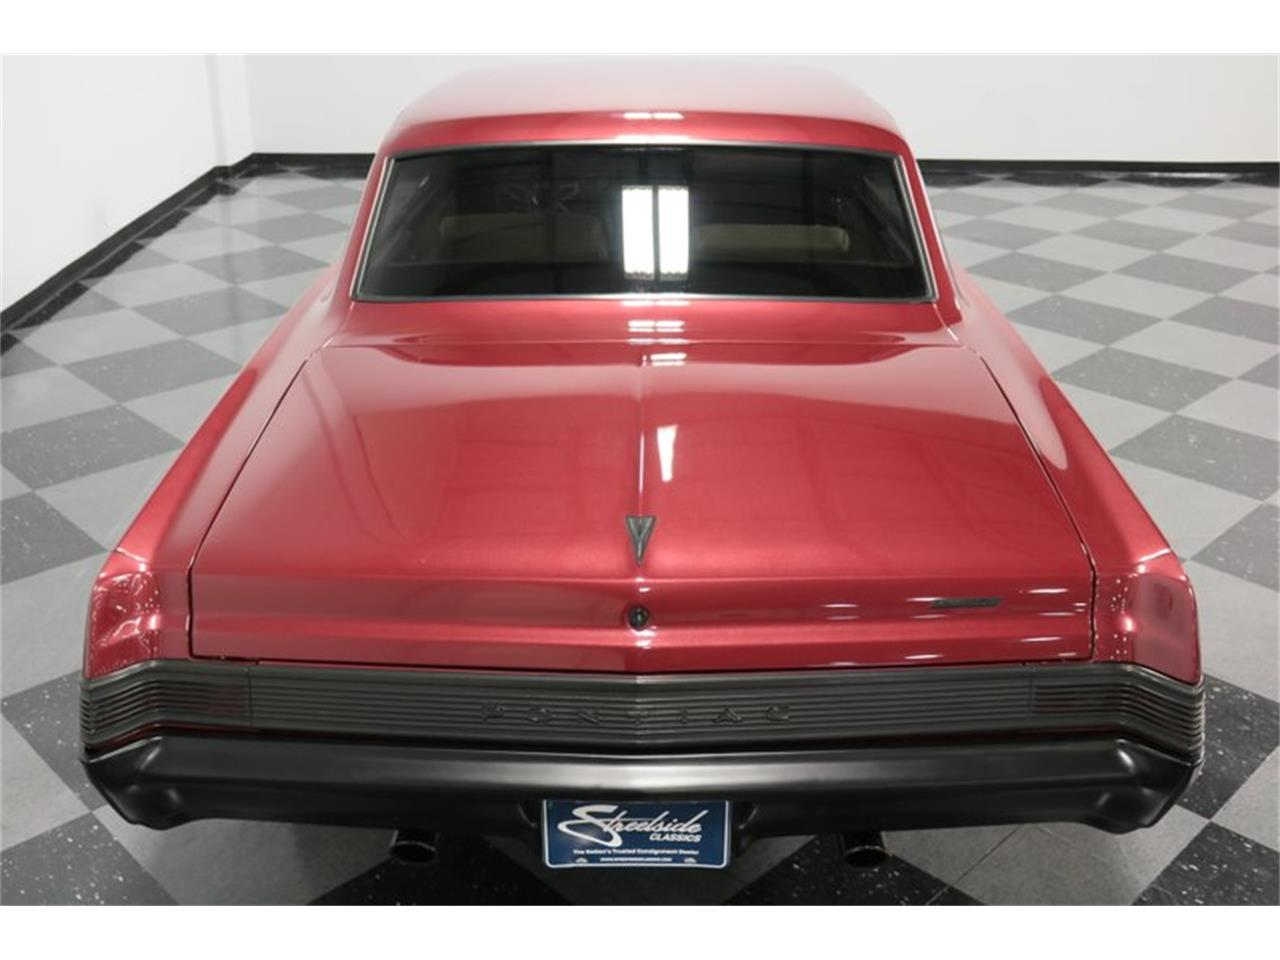 Large Picture of '65 Pontiac LeMans Offered by Streetside Classics - Dallas / Fort Worth - Q507